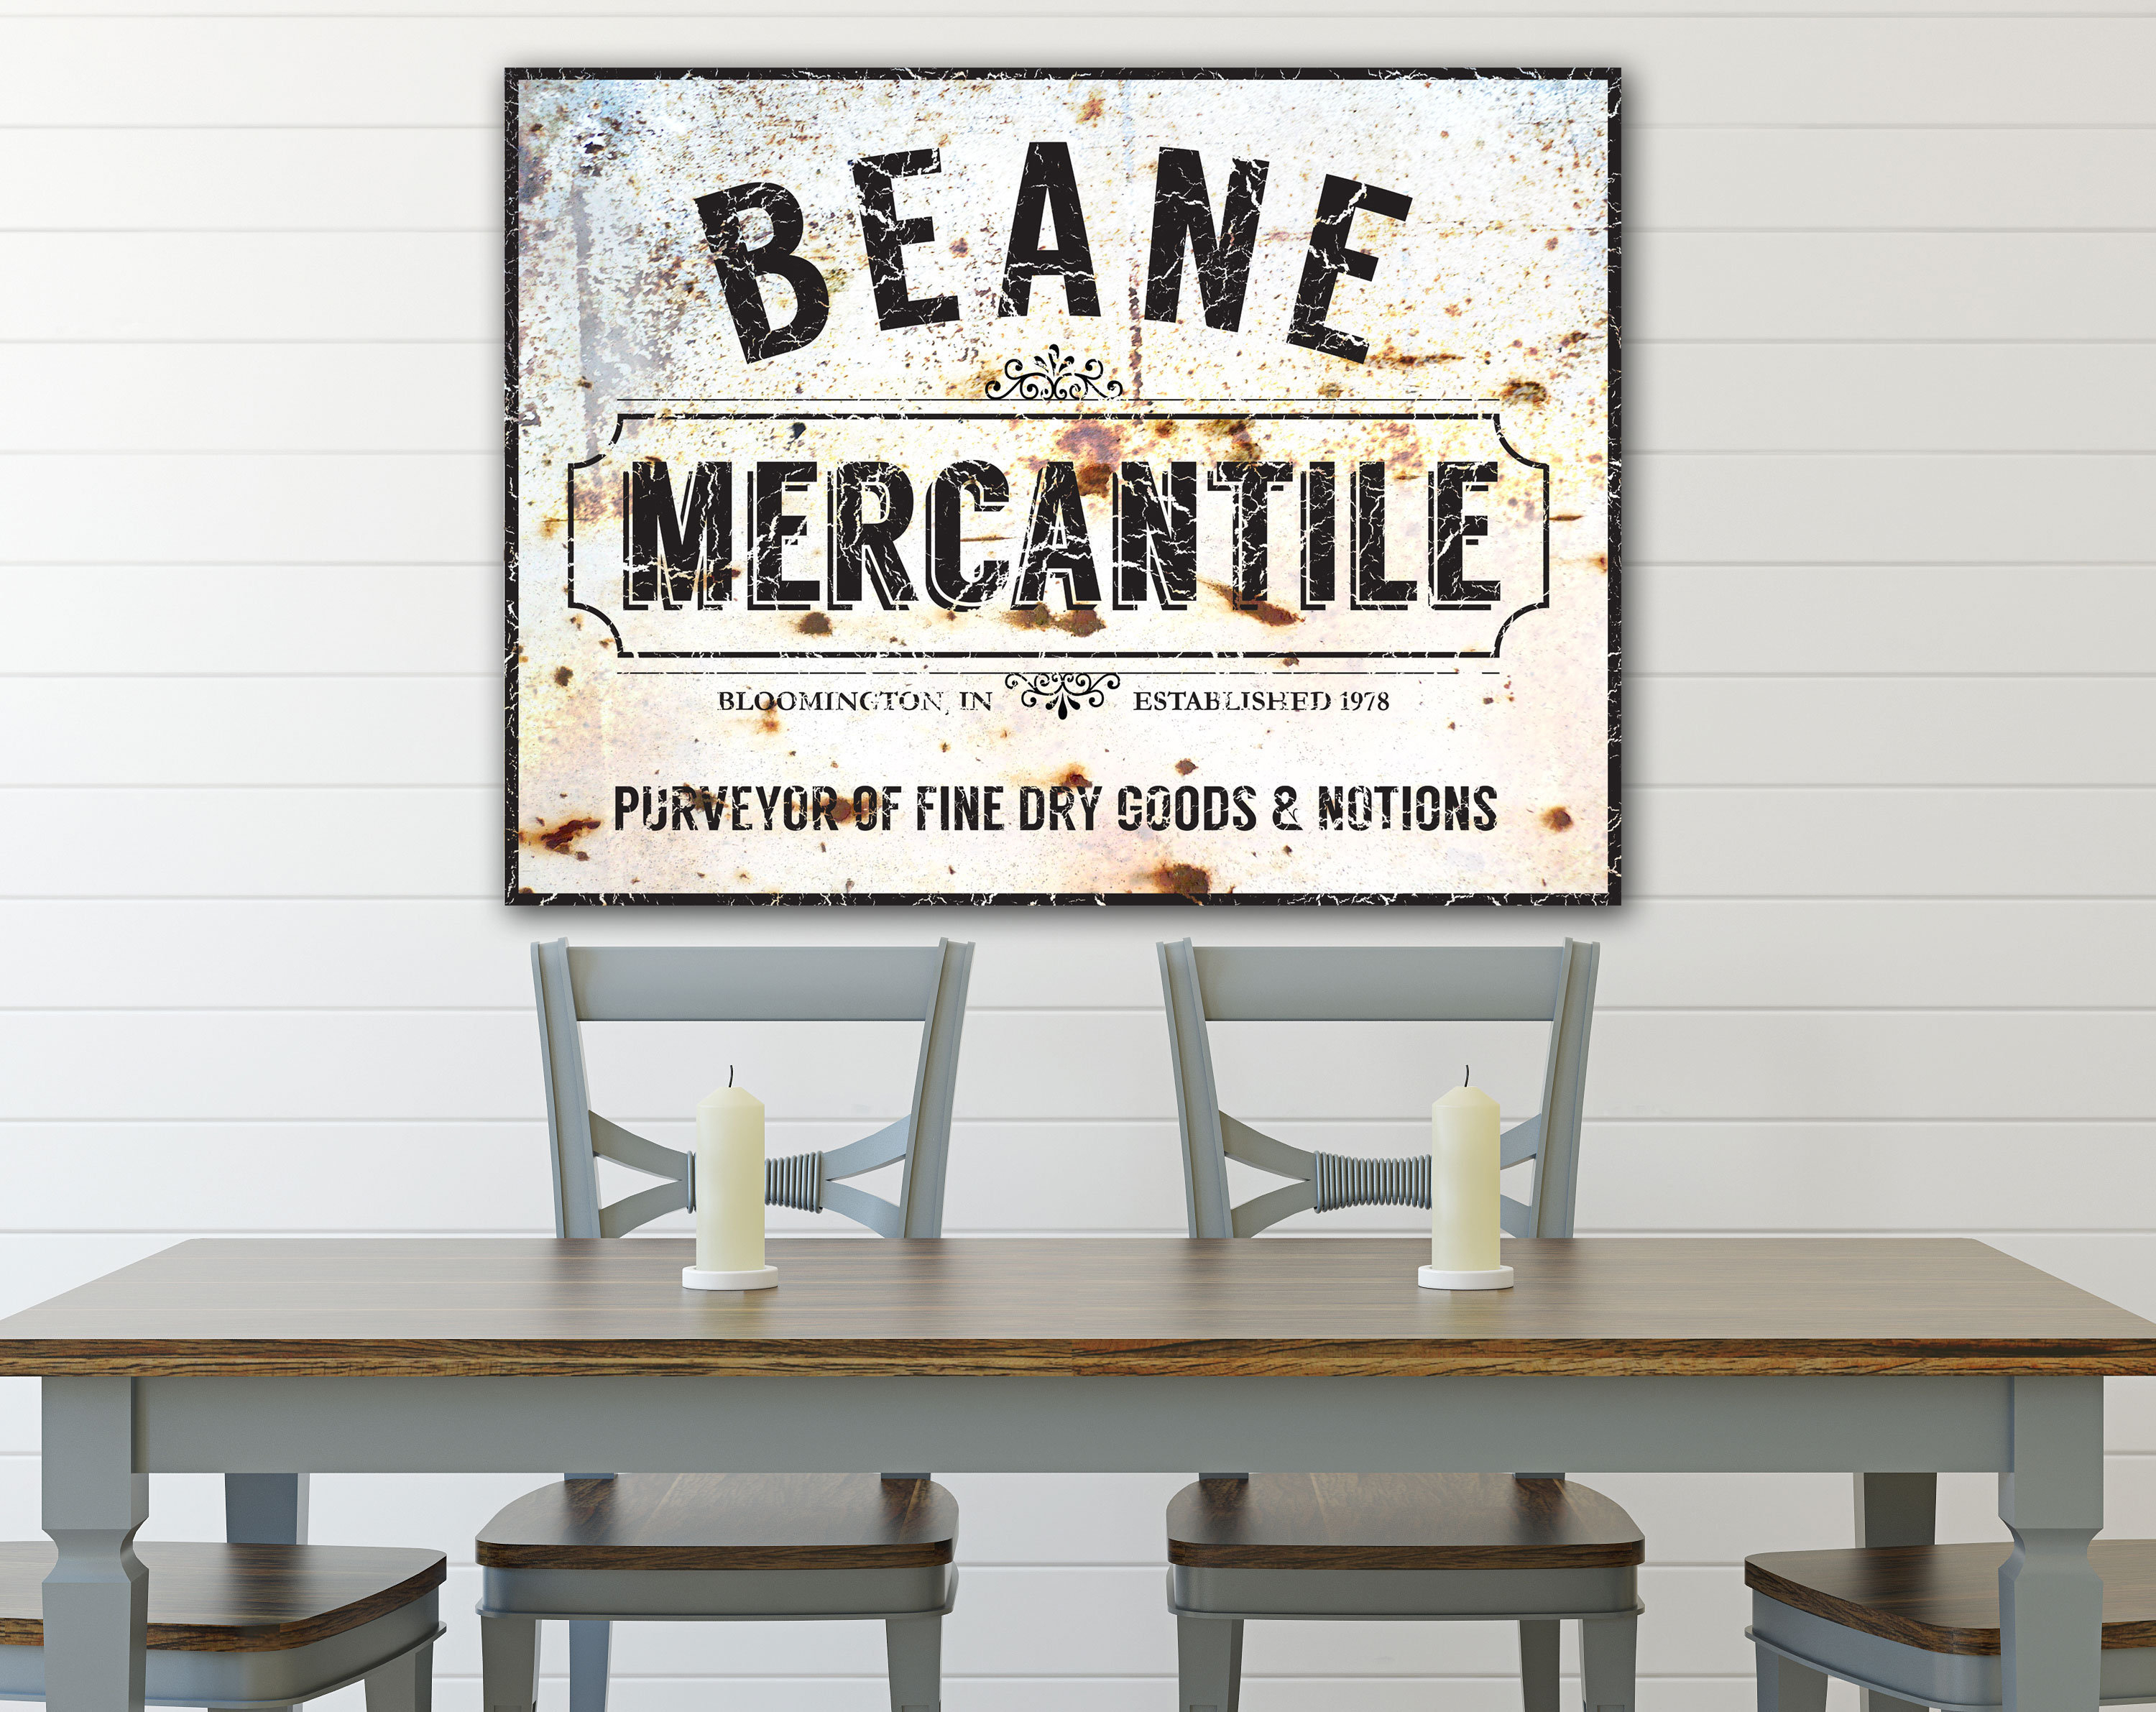 Custom Family Sign, Mercantile Sign, Large Rustic Wall Decor, Farmhouse Kitchen Decor, Last Name Sign, Vintage Dining Room Wall Art Within Personalized Distressed Vintage Look Kitchen Metal Sign Wall Decor (View 21 of 30)